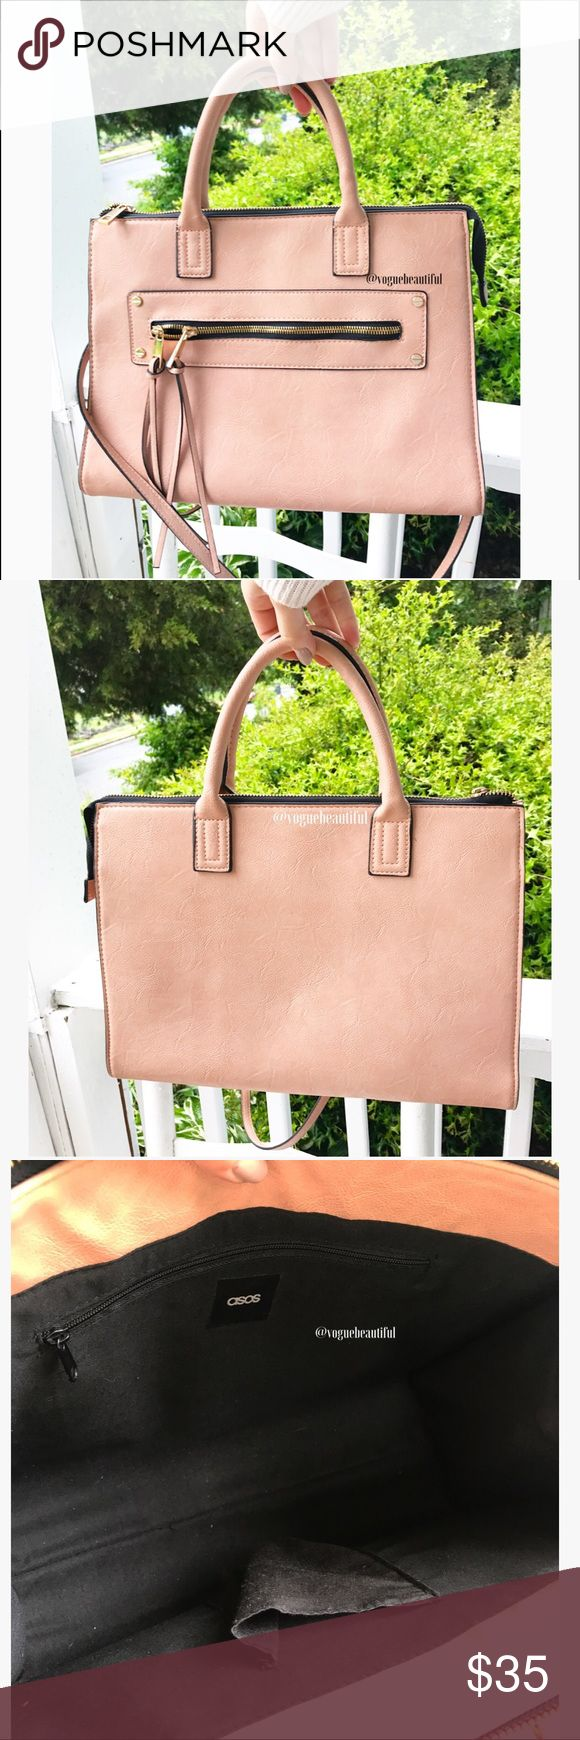 ASOS Structured Bag Gorgeous ASOS structured bag - pinky nude color (color will vary slightly from photos) & purposely distressed  - excellent preloved condition with minimal to no signs of wear - DIMENSIONS: 12.75 inches across x 9.5 inches in height - zip closure - includes longer shoulder strap - !!NO TRADES!! ASOS Bags Totes